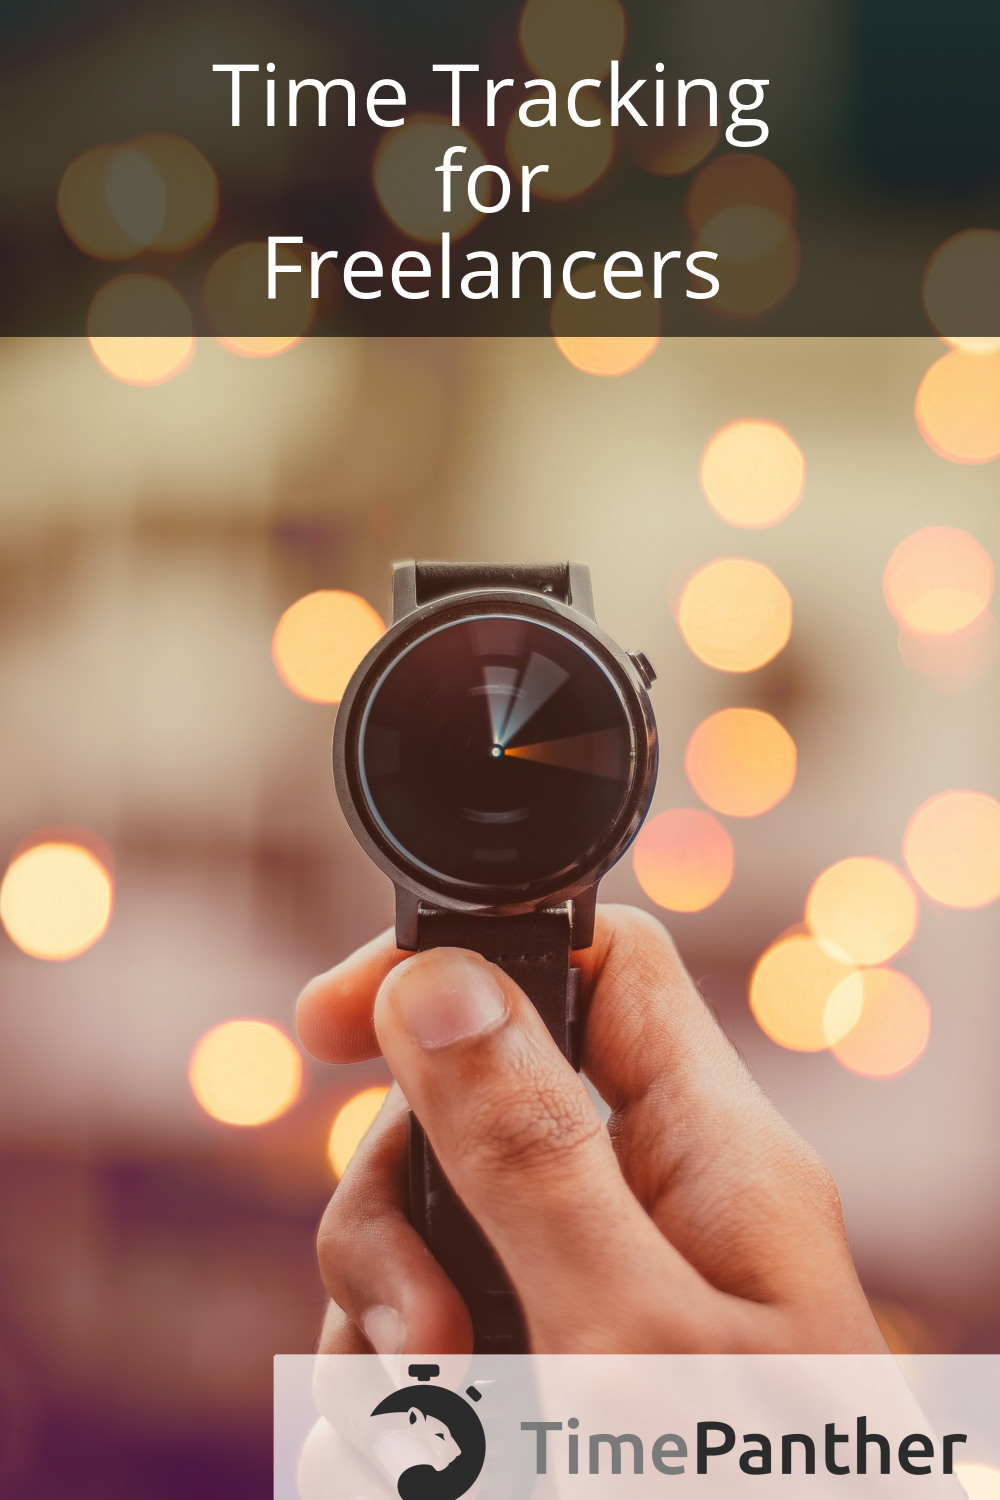 Time Tracking for Freelancers, timepanther.com. Photo of a hand holding a watch. Photo by Saffu on Unsplash.